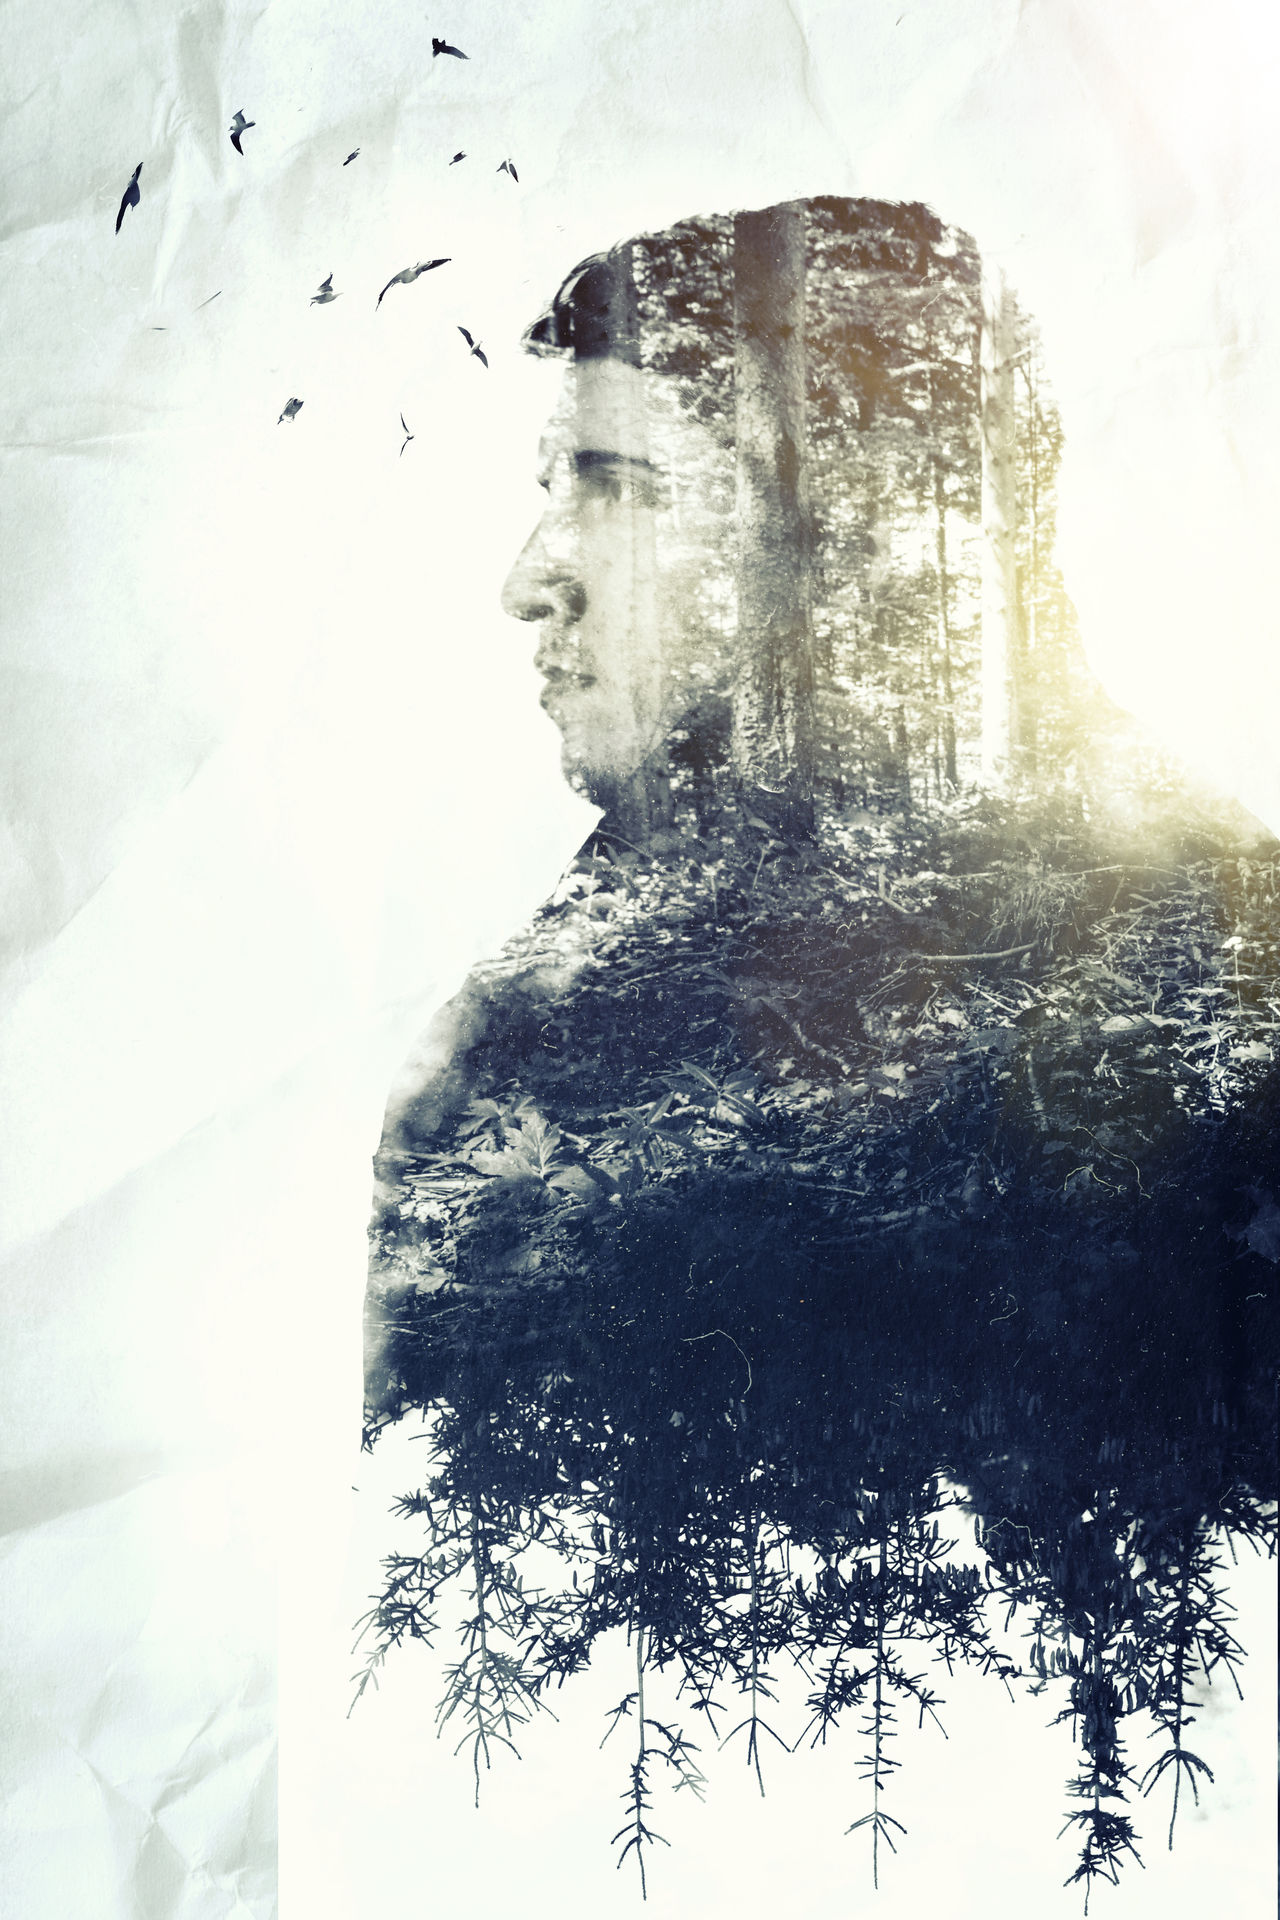 Birds Double Exposure Environment Environmental Conservation Forest Forest Photography Future Longing Love Man Nature Nature Outdoors Sideways Thoughtful Thoughts Tranquility Tree Wood